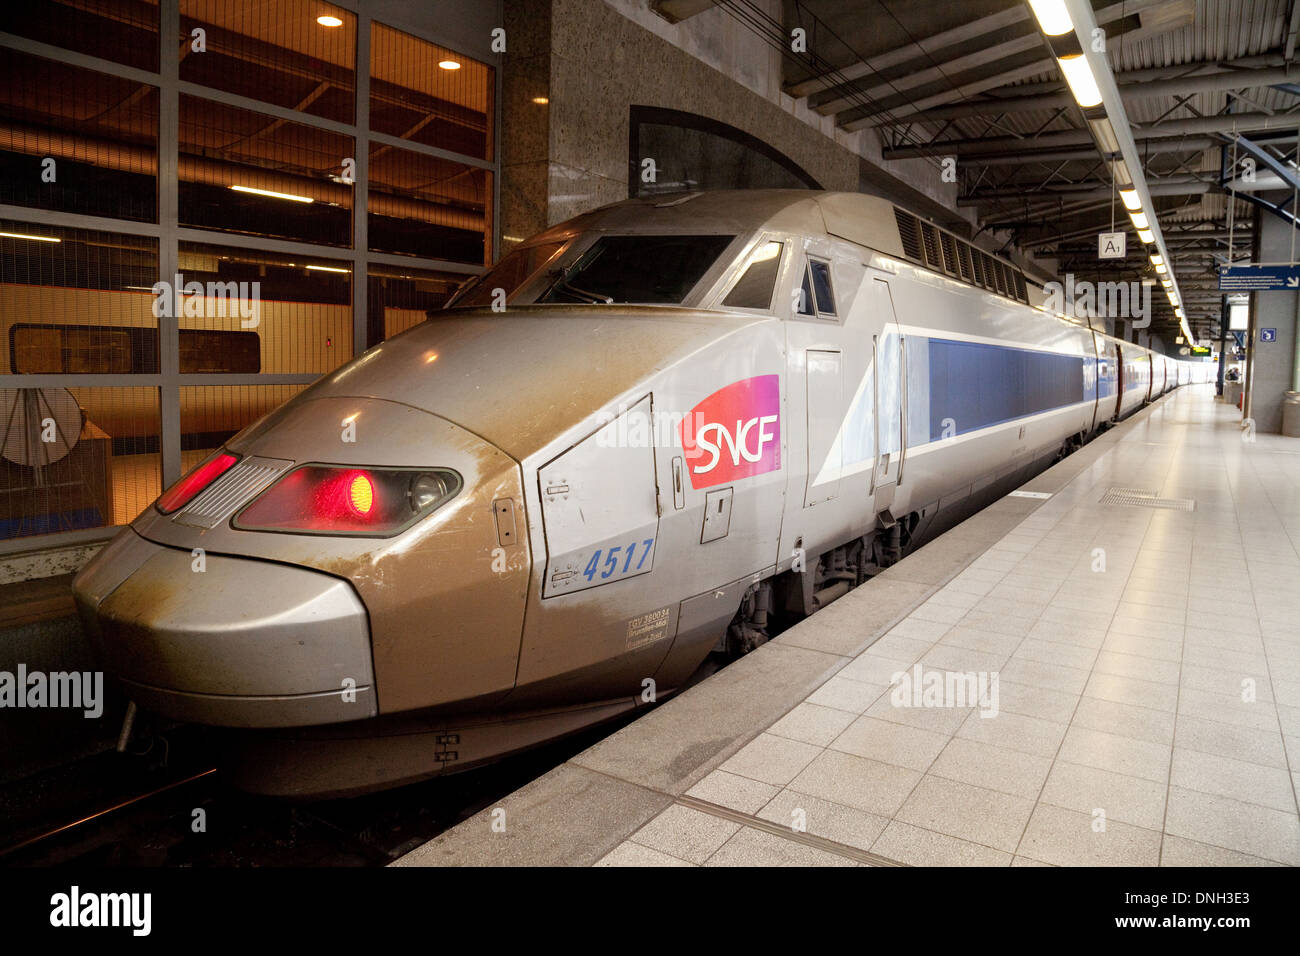 A french SNCF high speed train at the platform, Bruxelles Midi railway station, Brussels, Belgium, Europe - Stock Image